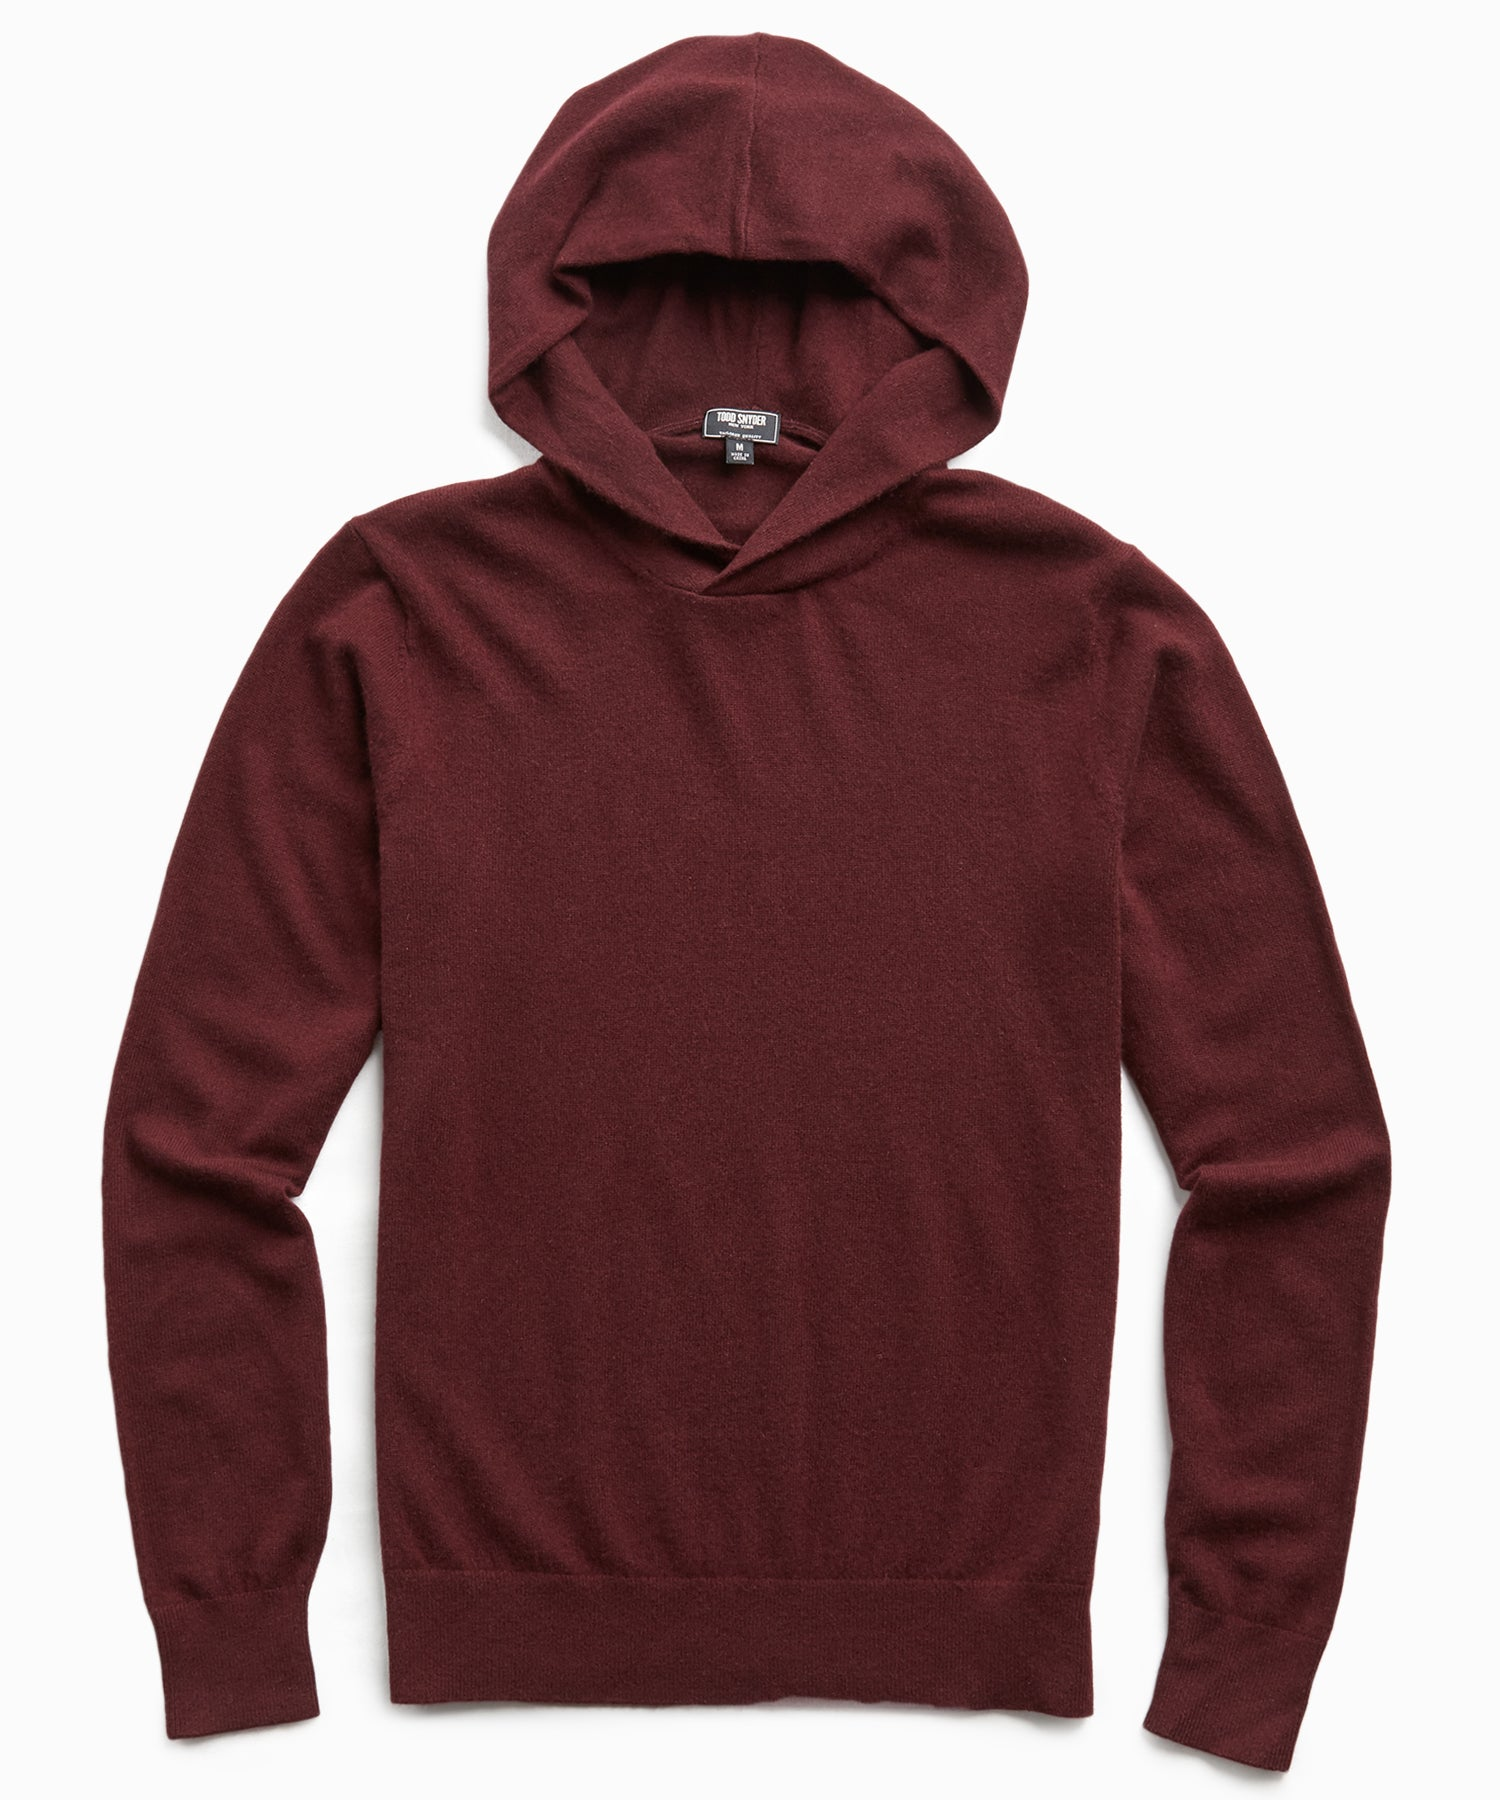 Cashmere Hoodie in Burgundy